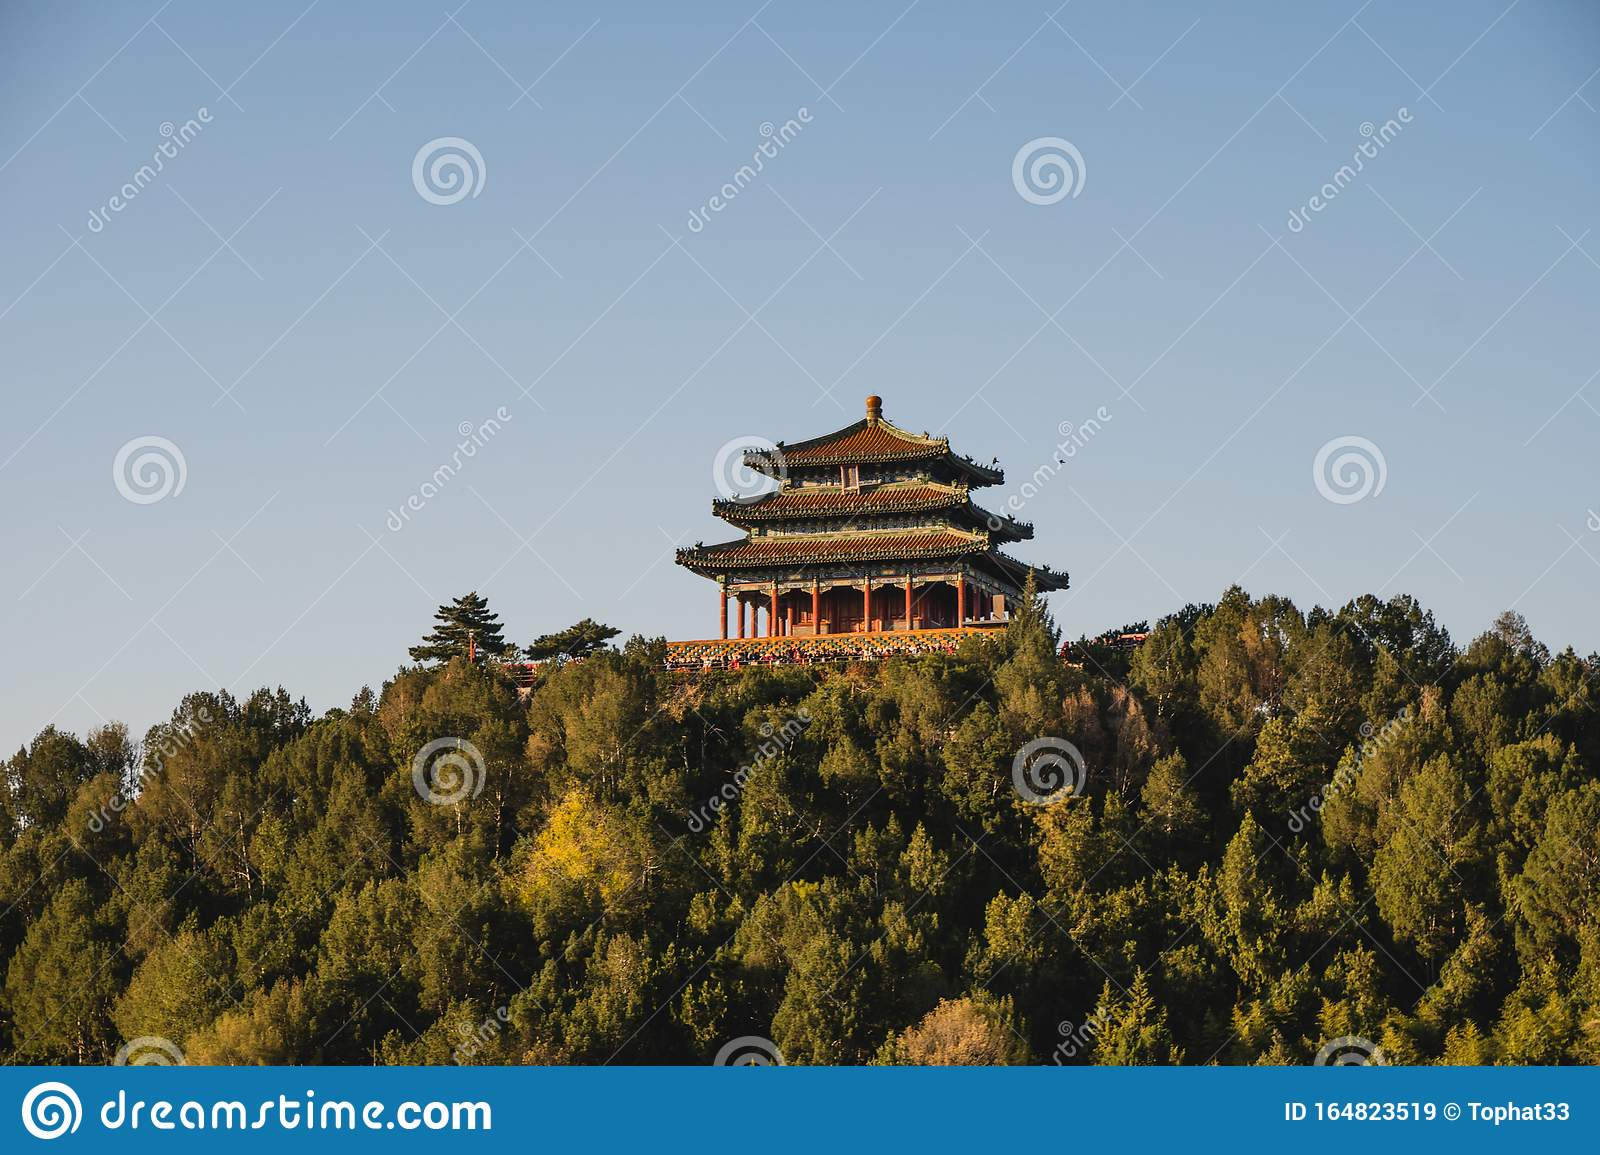 Chinese Traditional Architecture Chinese Roof Top Design In Beijing Stock Image Image Of Ceiling Culture 164823519